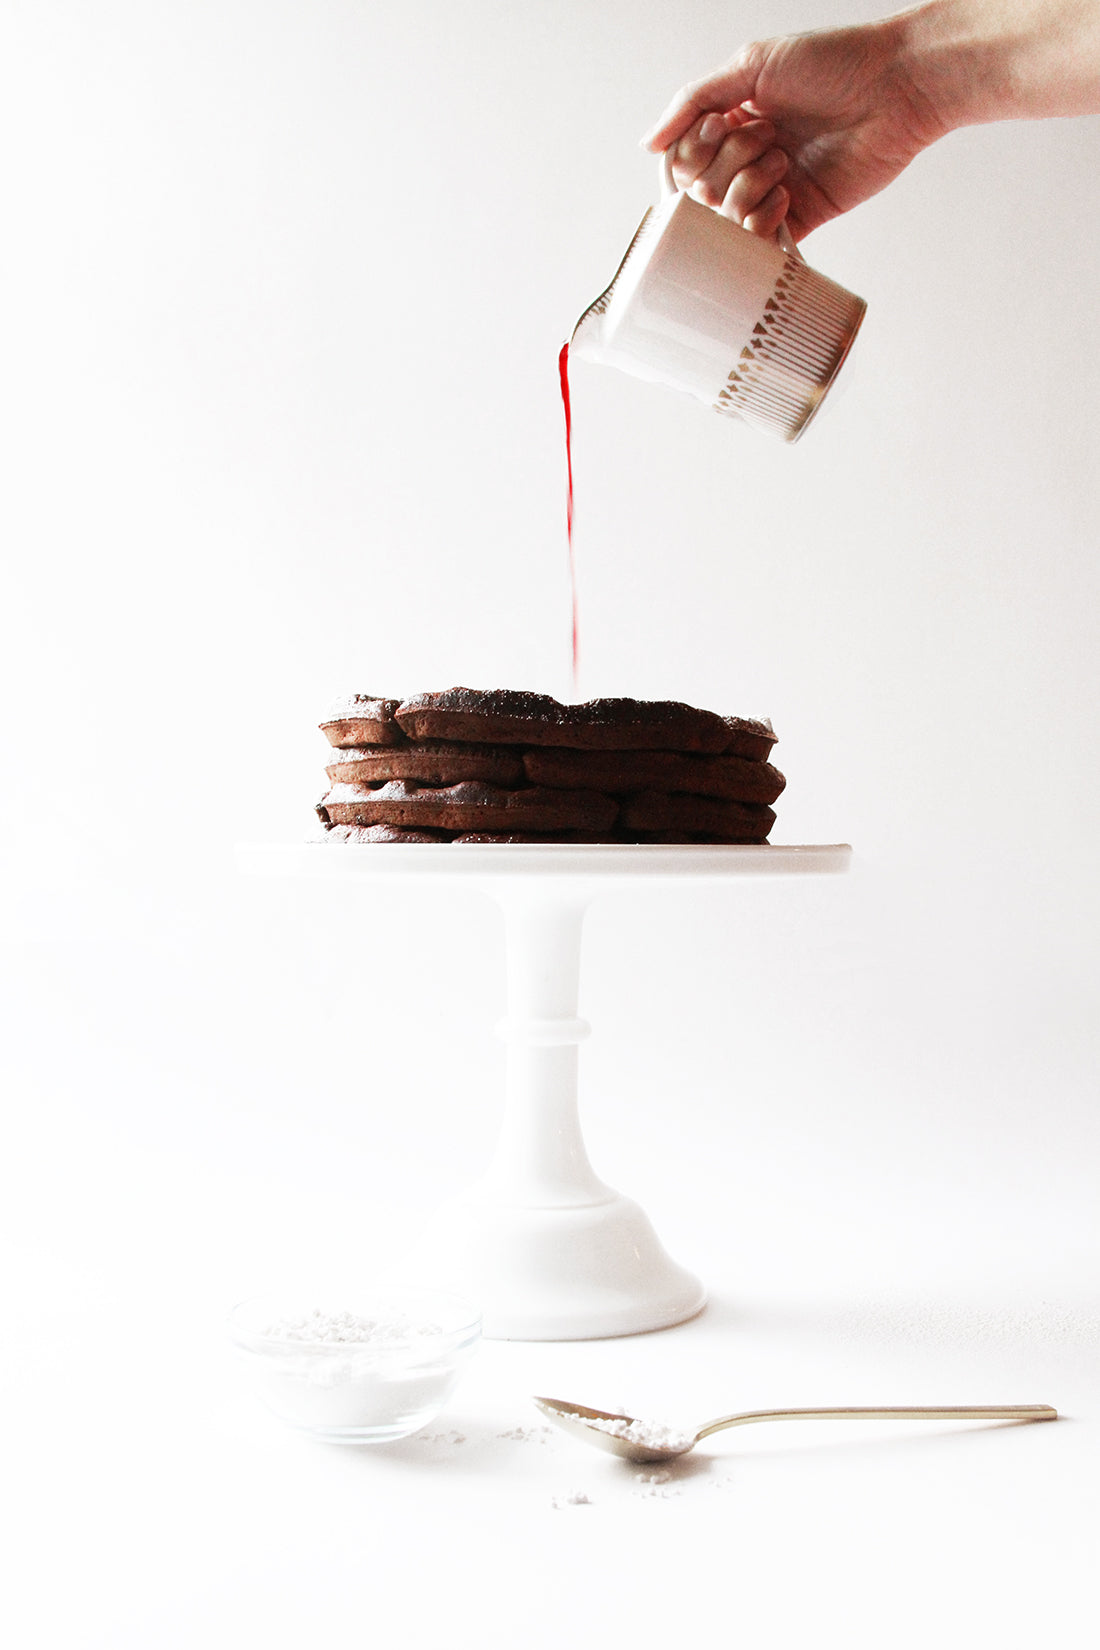 A hand pouring jam onto a stack of Miss Jones Baking Co Chocolate Cake Waffles on a cake stand